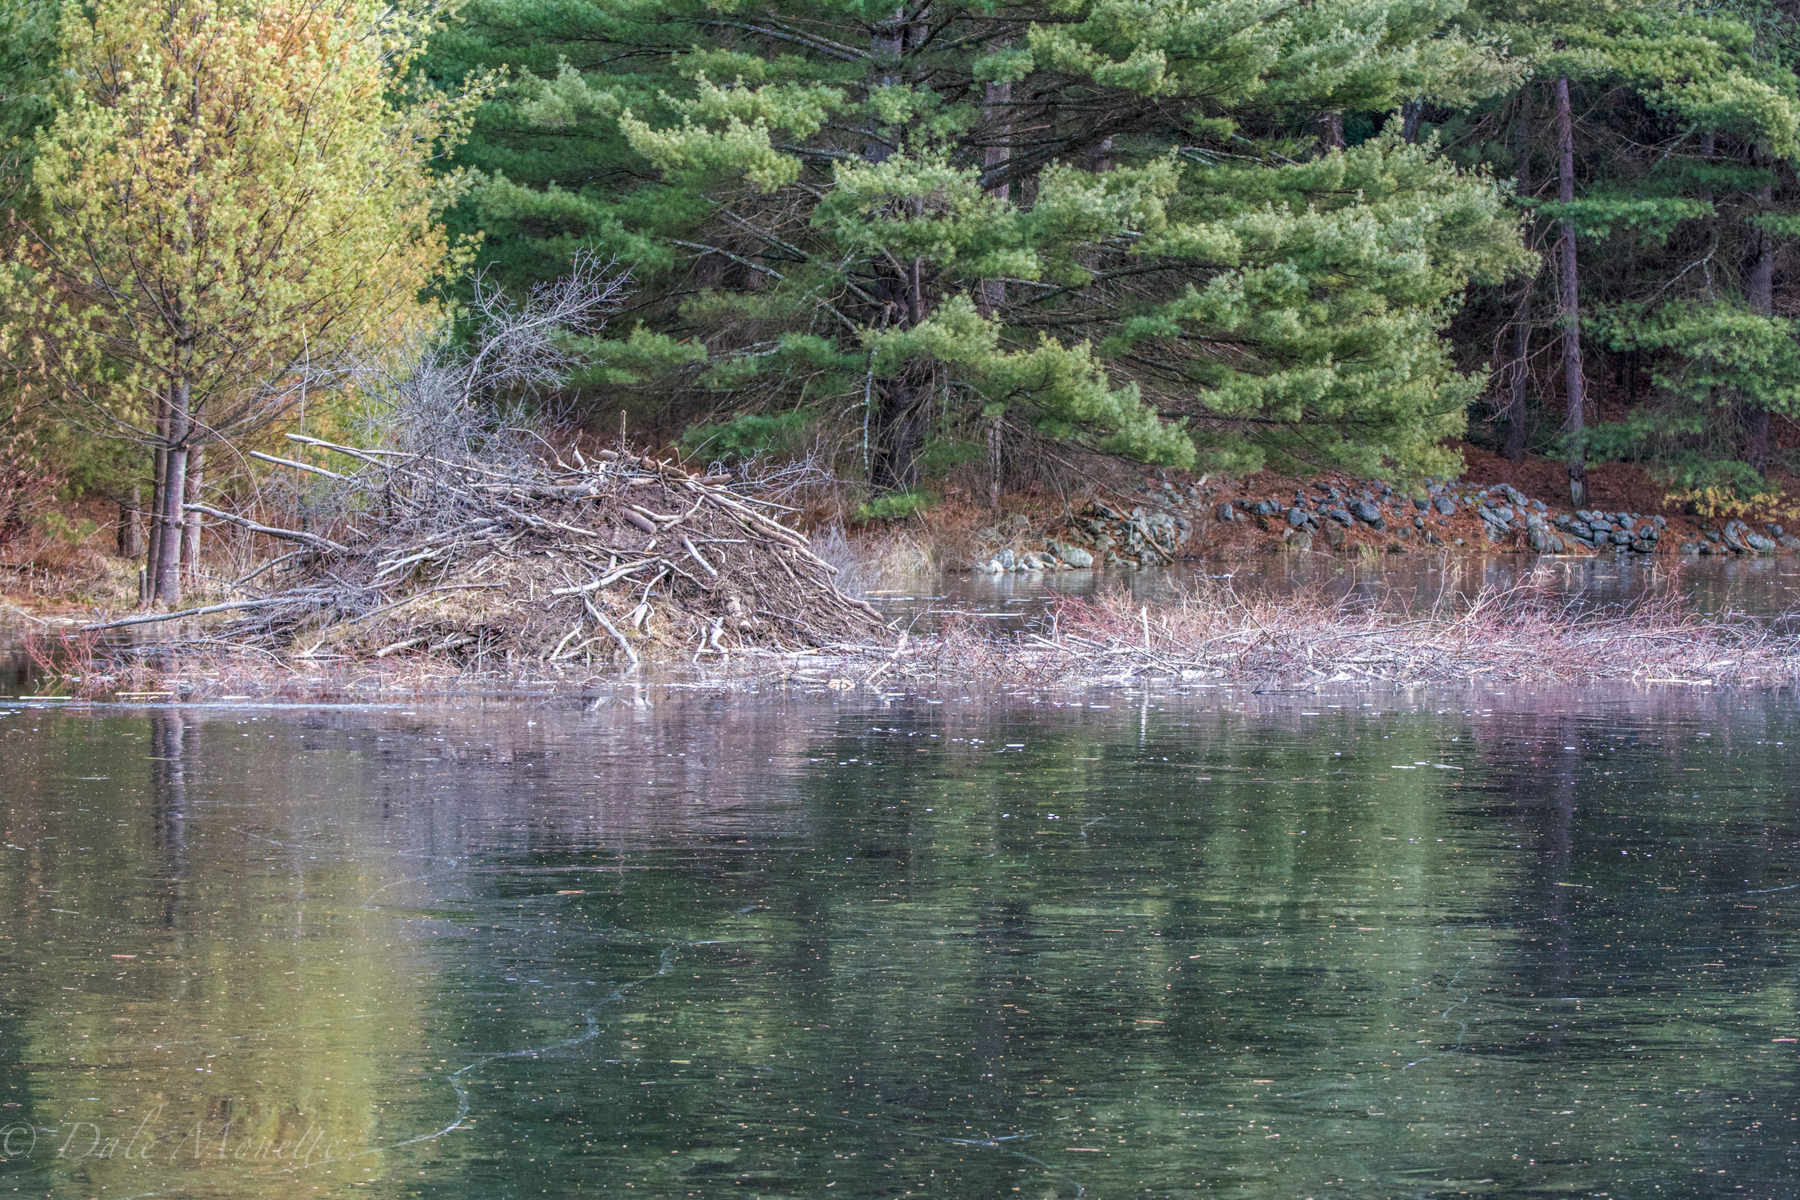 These beavers have a great twig cache built up for food through the winter.